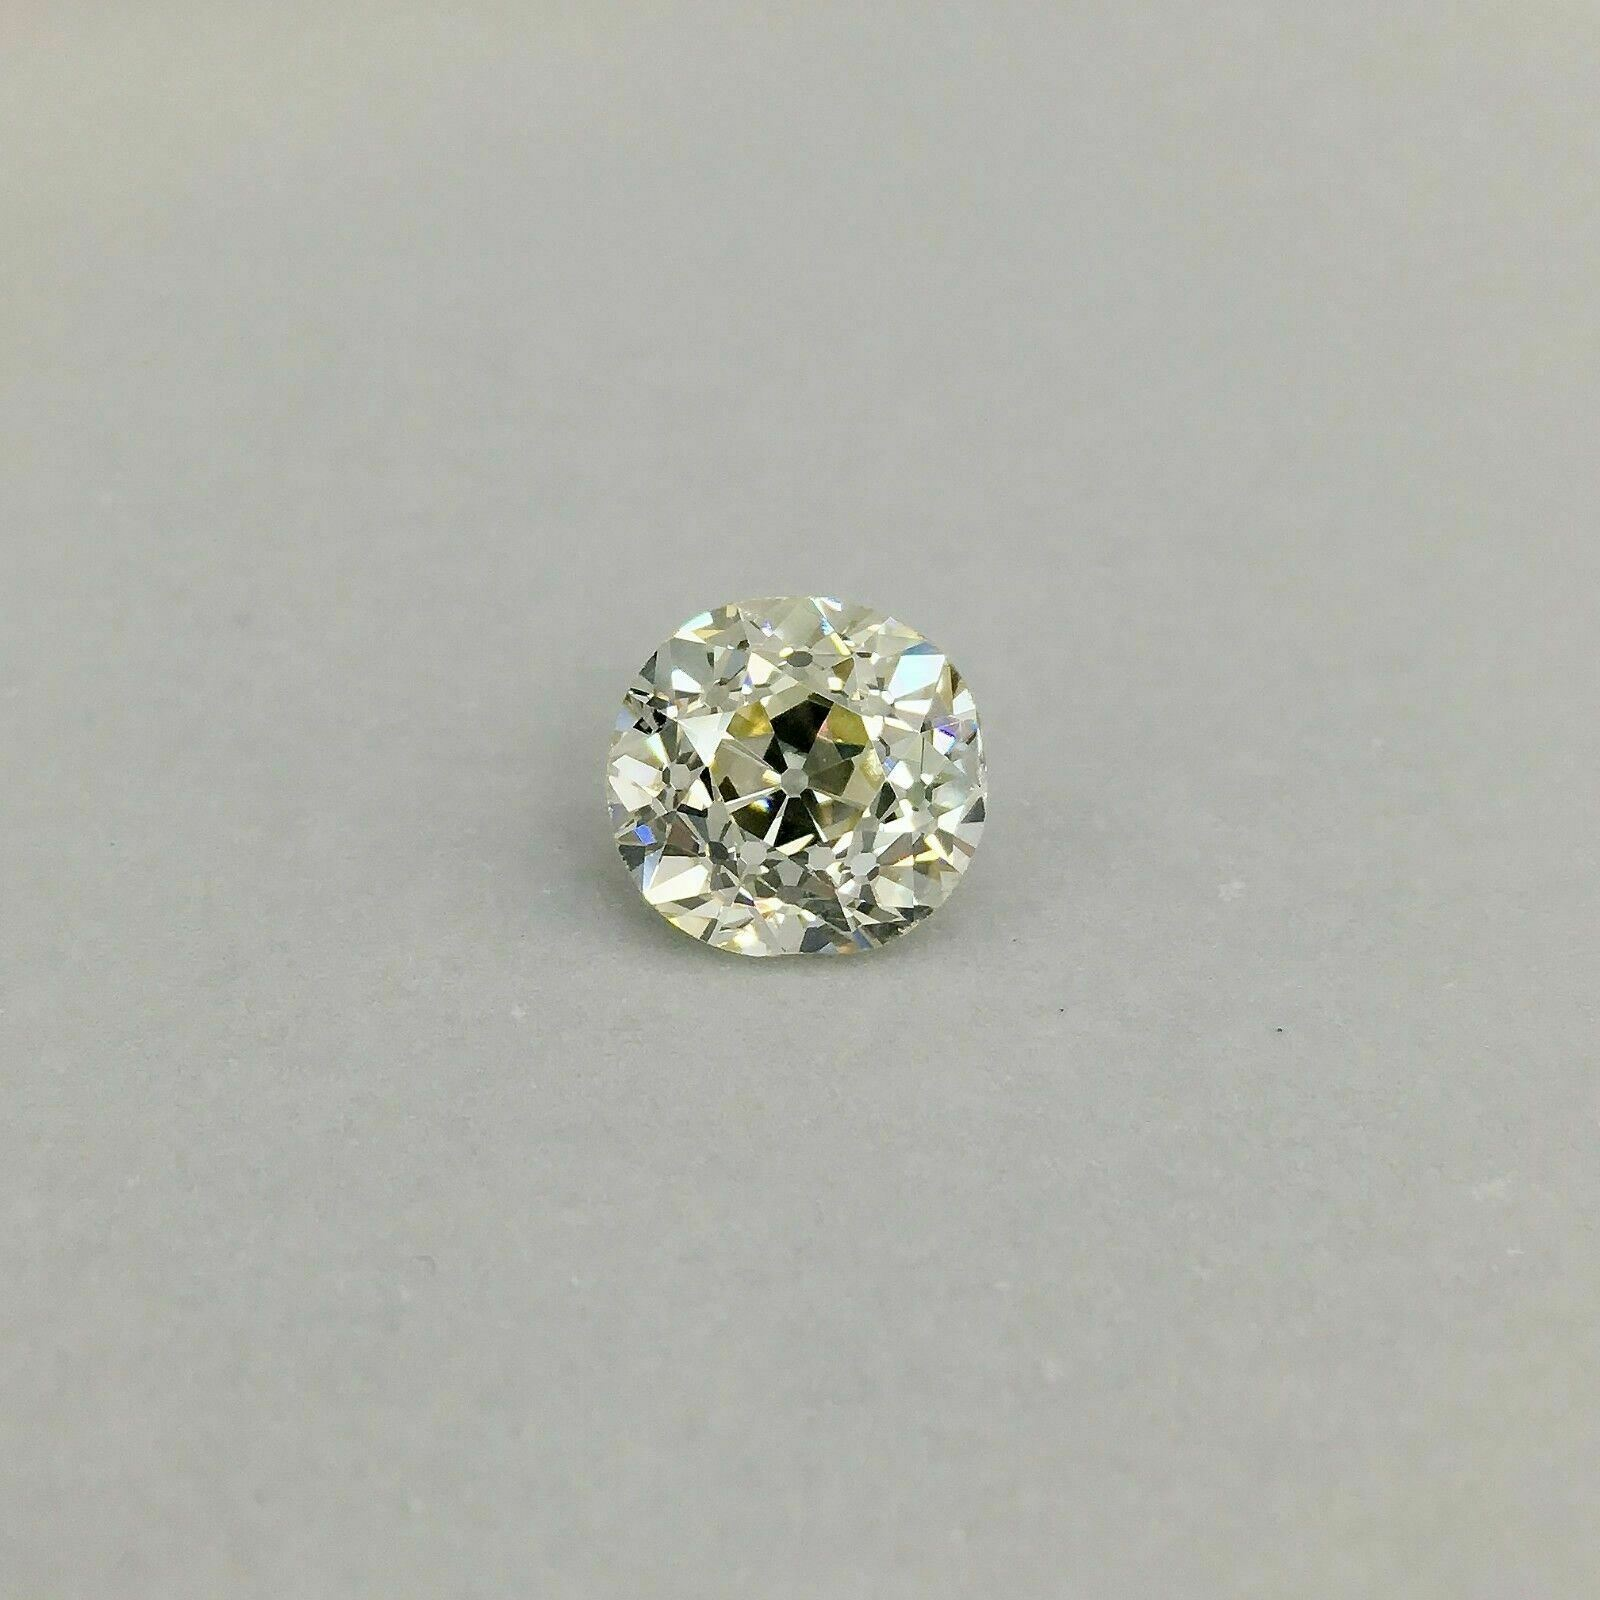 Vintage & Rare 5.25 Ct Old European Cut Loose Diamond GIA Certified O-P SI-1